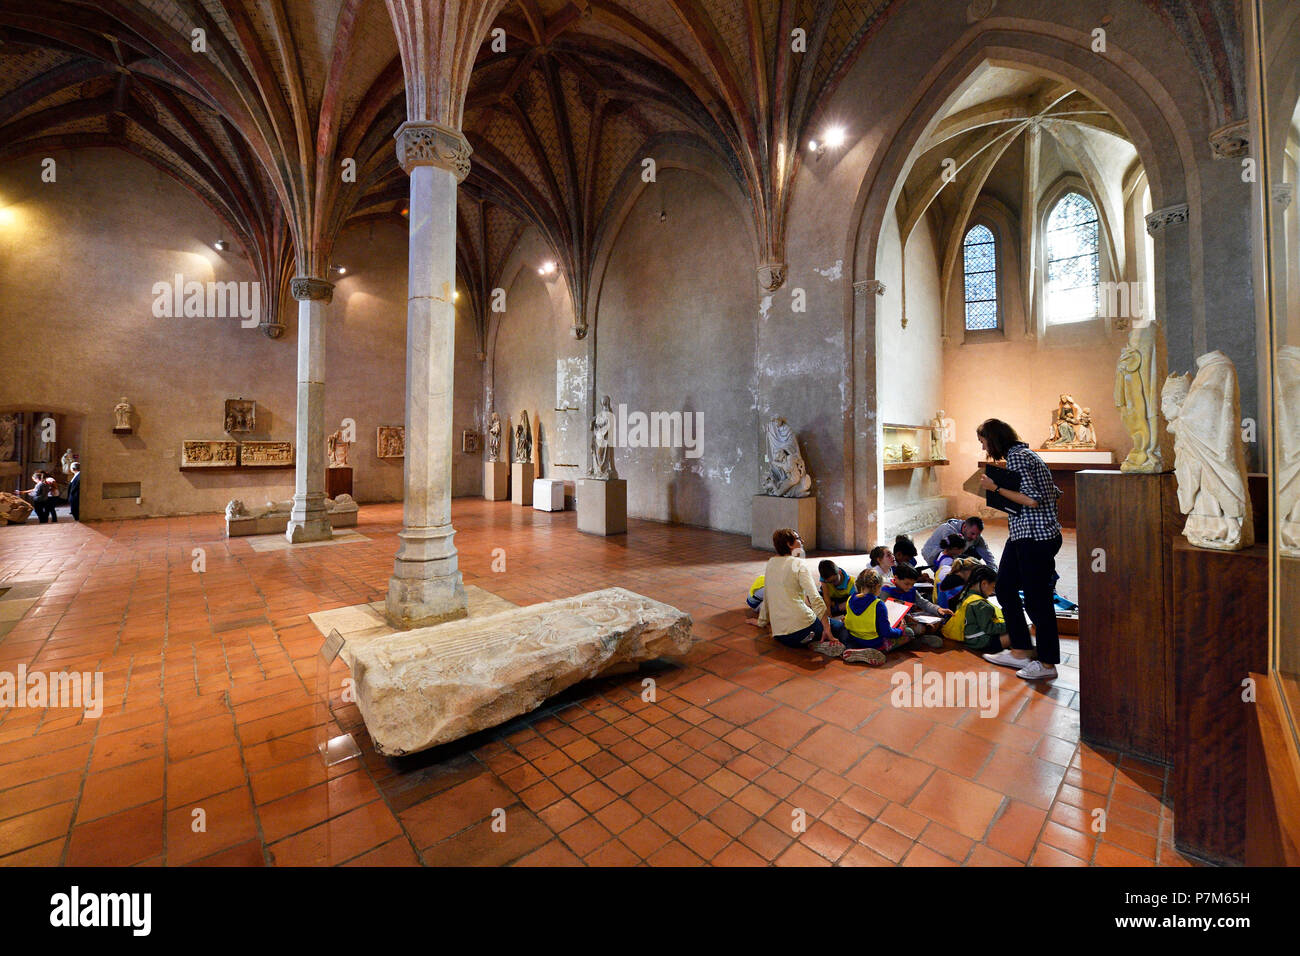 France, Haute Garonne, Toulouse, Augustins museum in the former Augustins convent - Stock Image